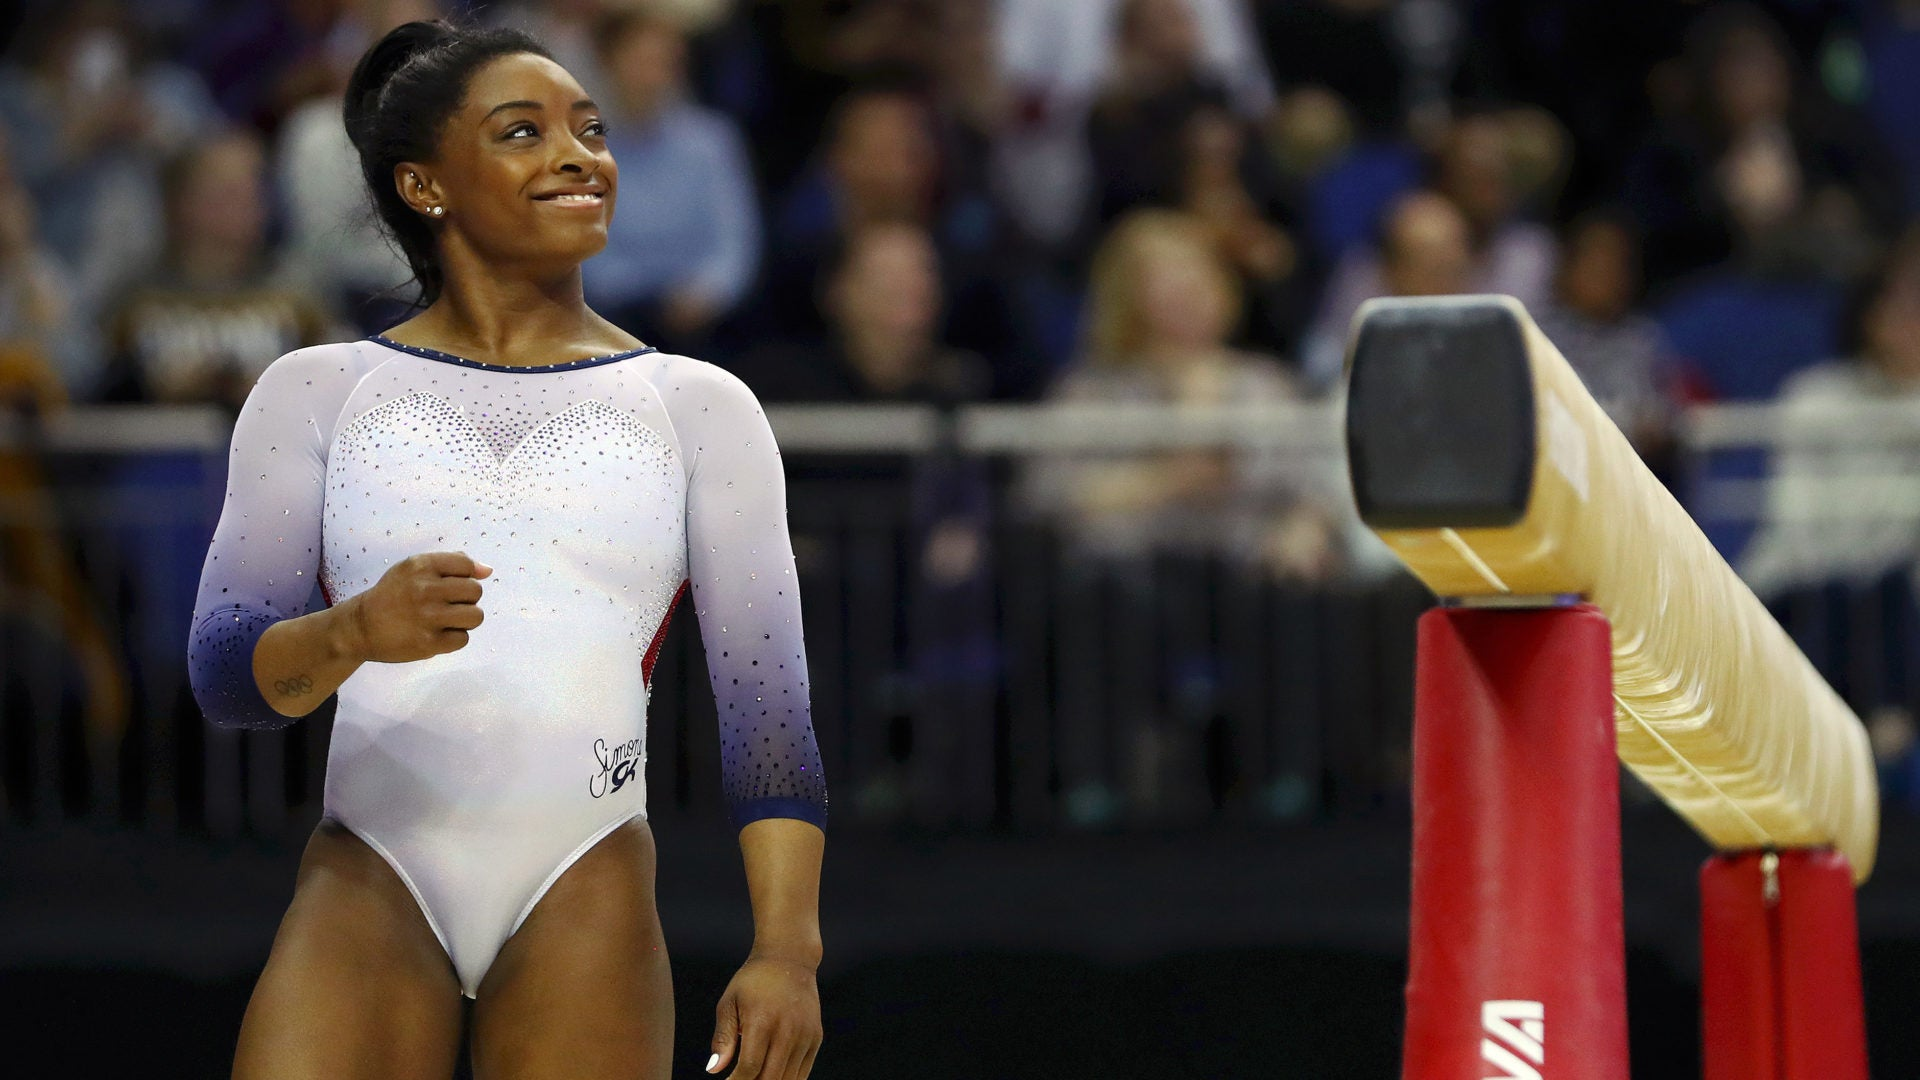 Simone Biles Is Now The First Gymnast To Ever Land A Double-Double Dismount